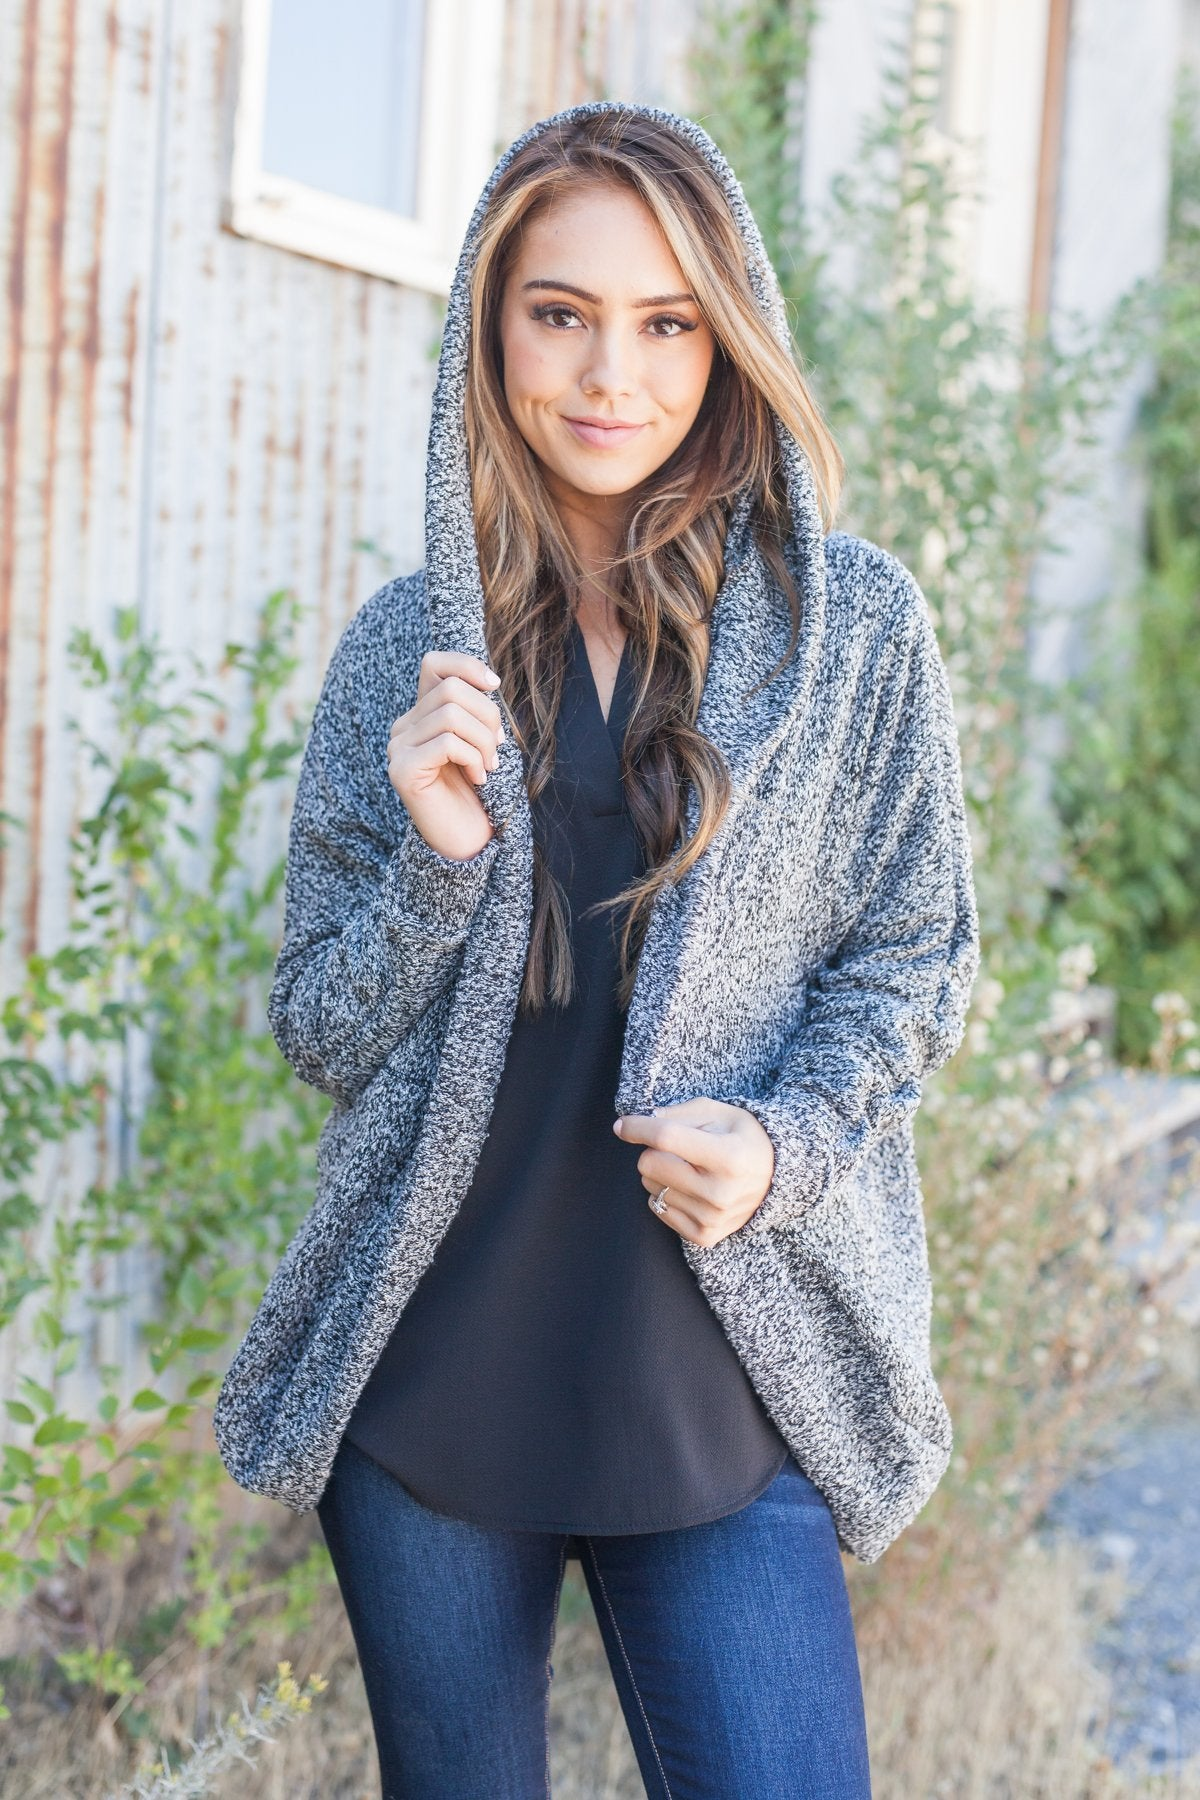 Warm Fuzzy Nubby Knit Hooded Cardigan - ALL SALES FINAL